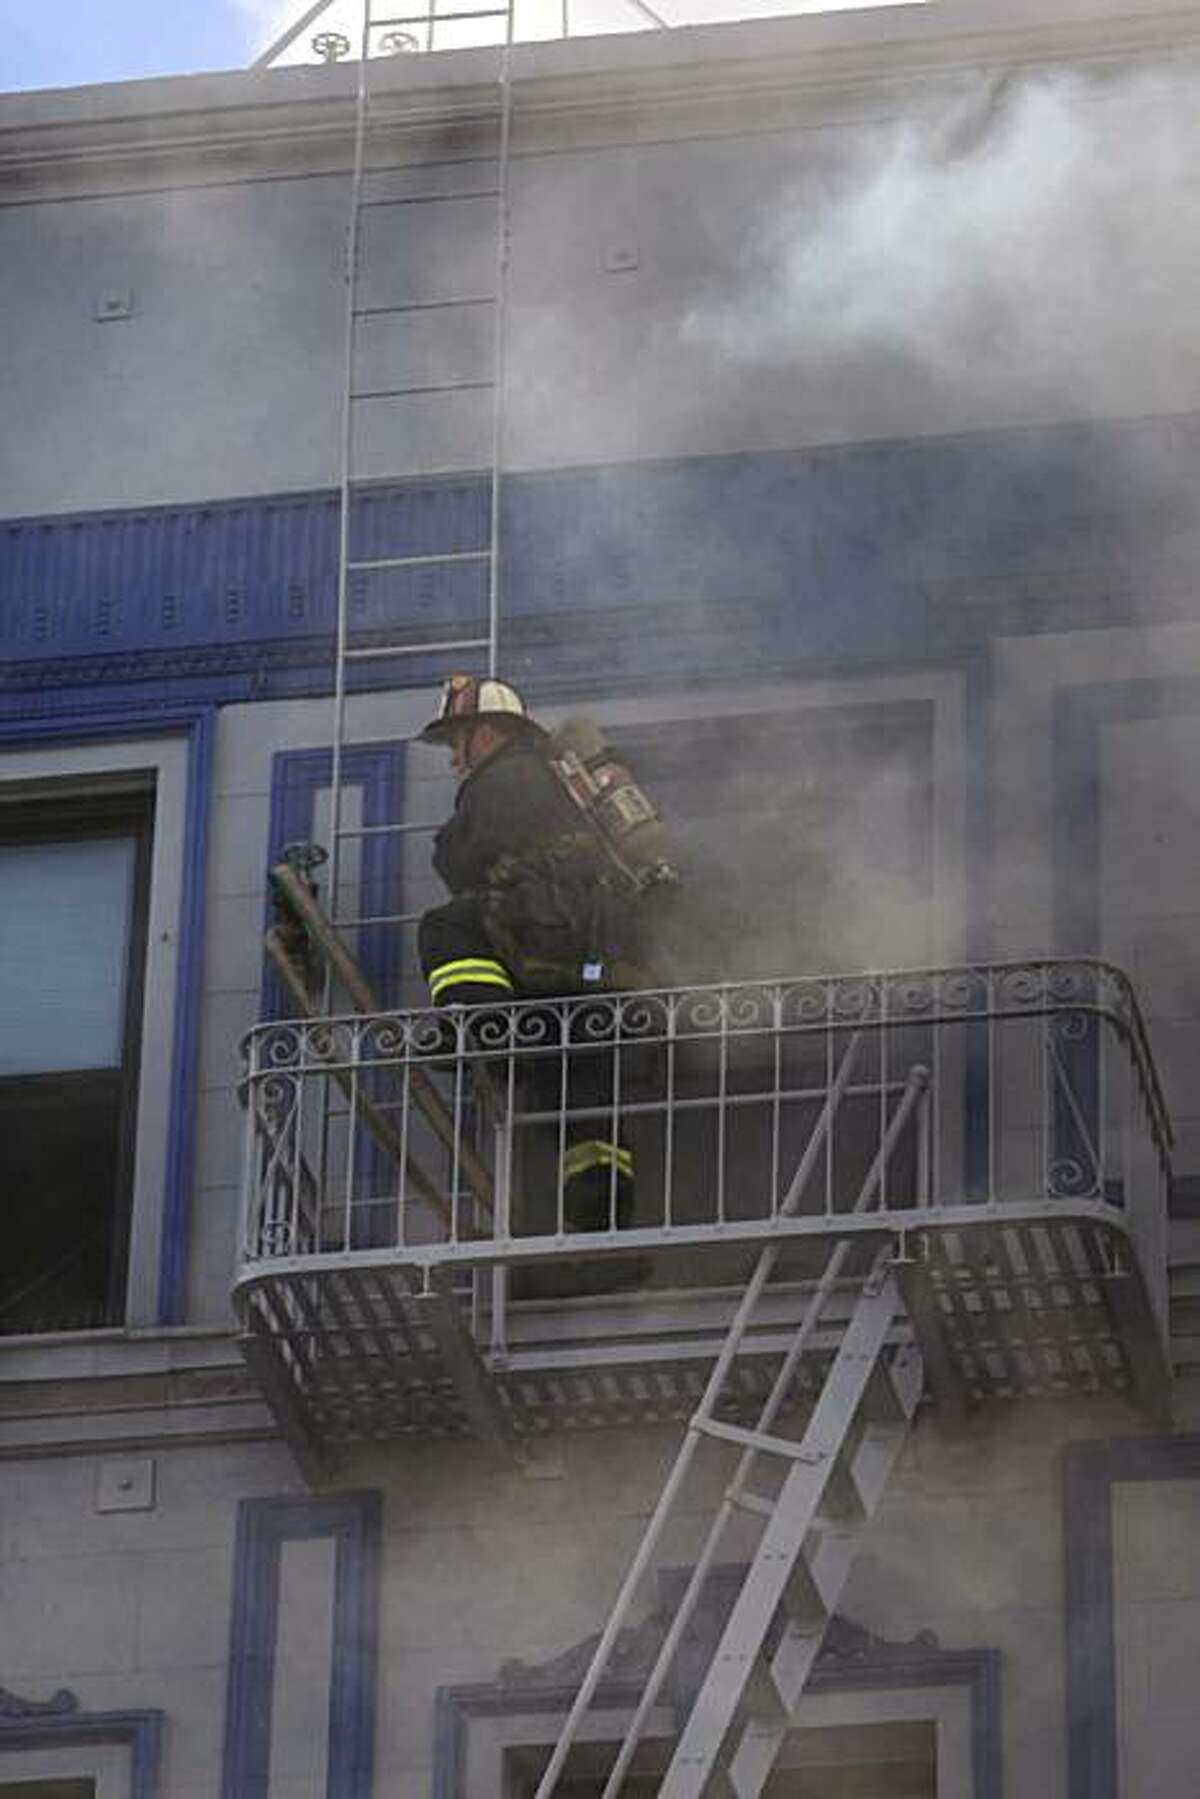 A San Francisco firefighter climbs on a fire escape as others work on a structure fire at 111 Taylor St. on Thursday. The building is a halfway house for parolees.